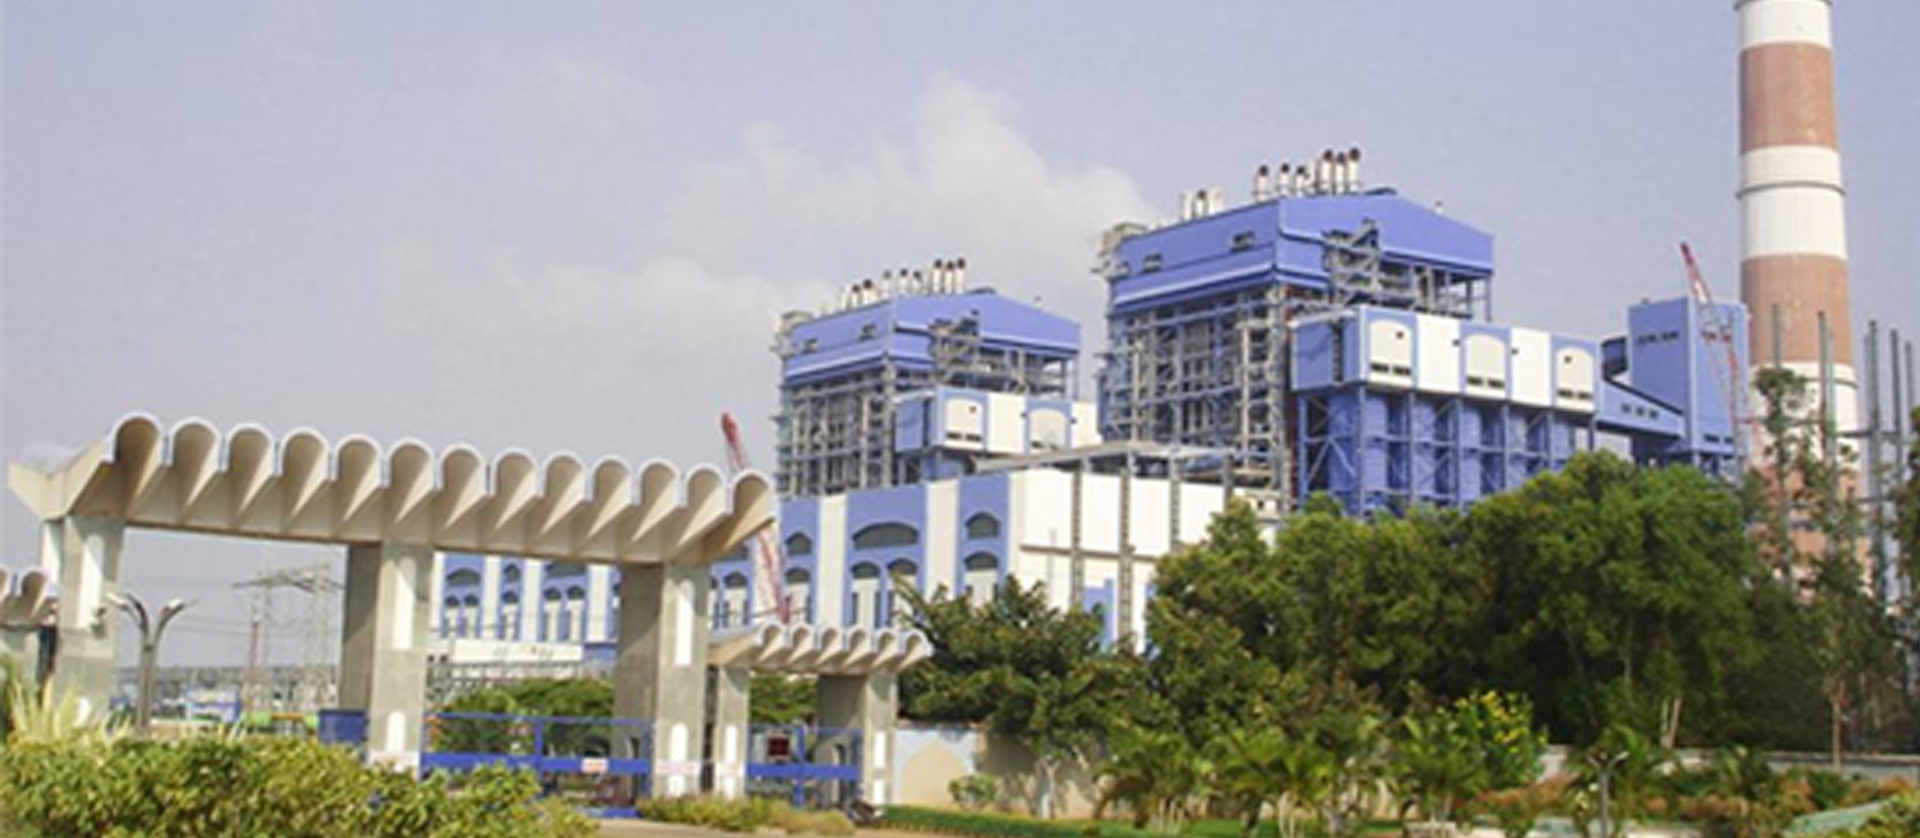 Super Thermal Power Station: Simhadri, Vishakhapatnam, Andhra Pradesh